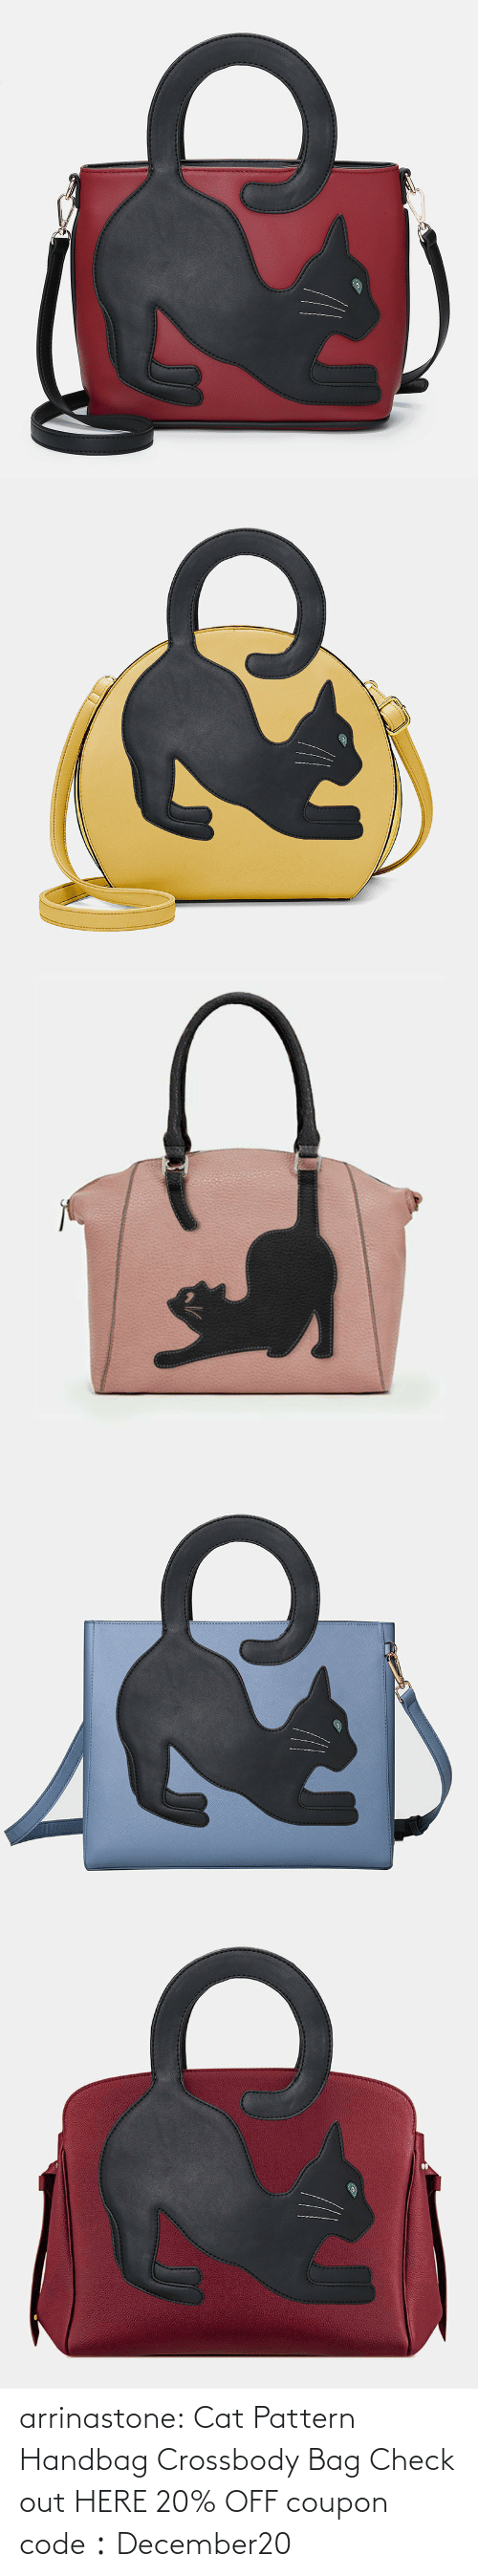 coupon: arrinastone: Cat Pattern Handbag Crossbody Bag Check out HERE 20% OFF coupon code:December20